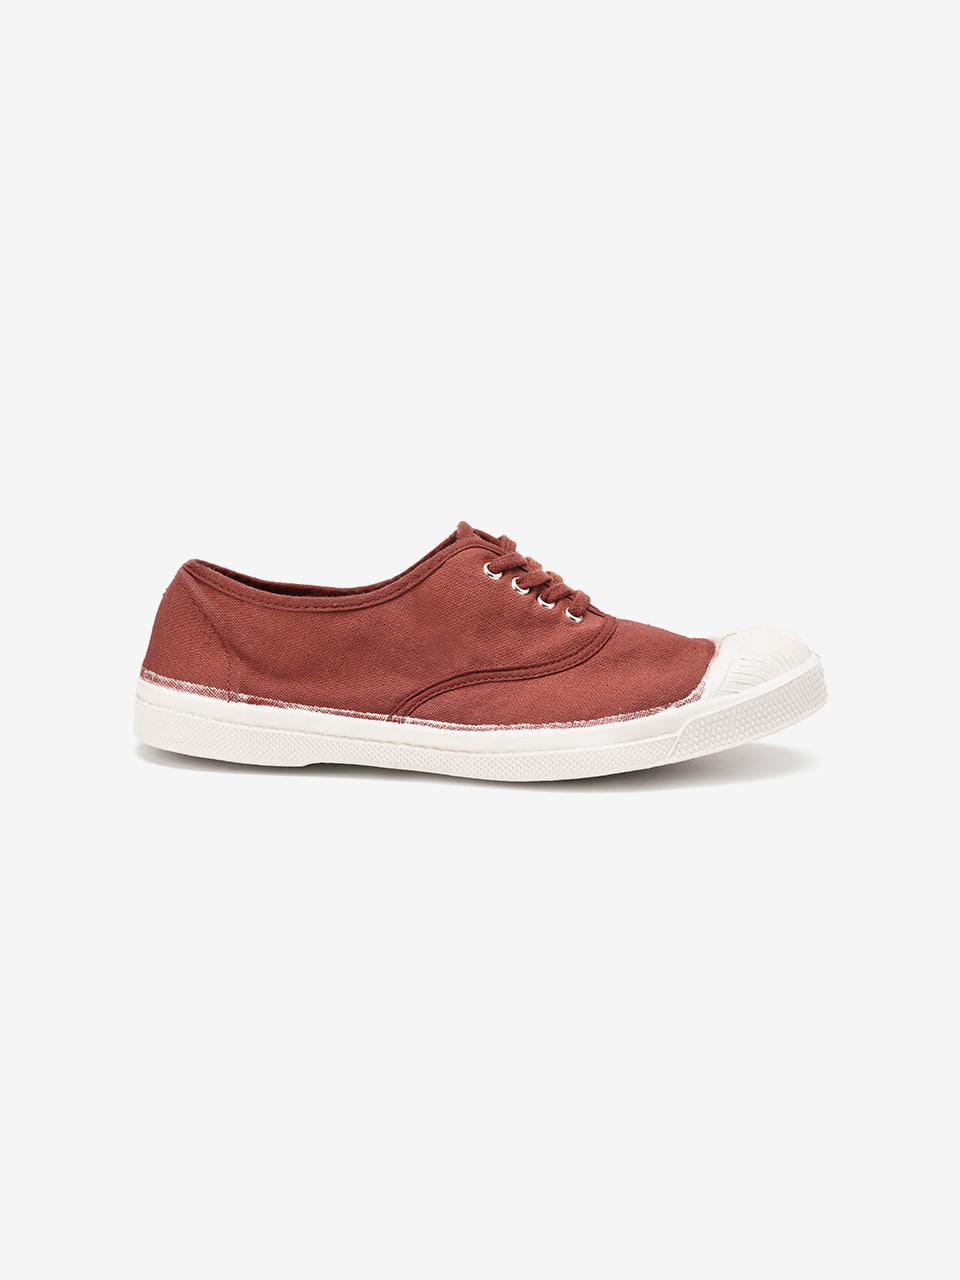 TENNIS WOMAN LACET - ROSEWOOD